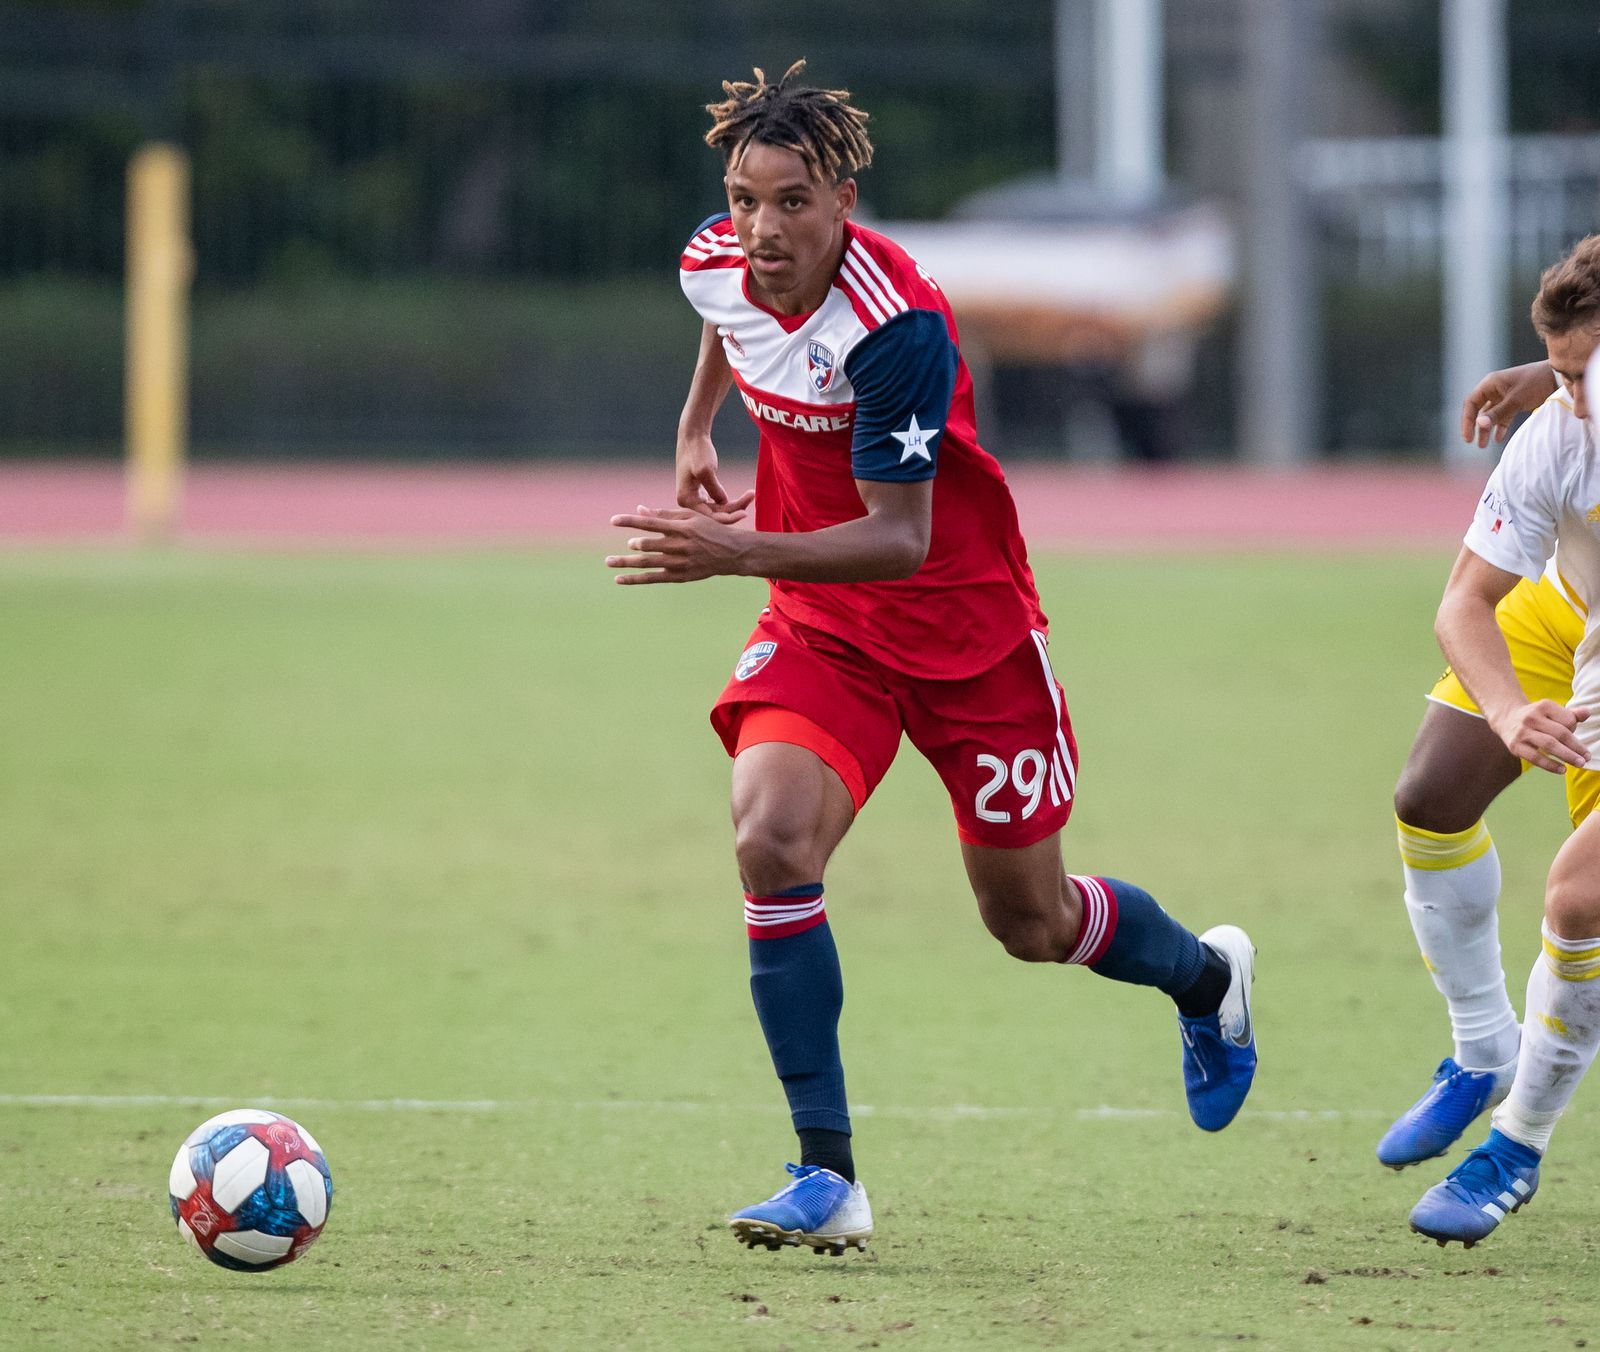 DALLAS, TX - JUNE 19: Bryan Reynolds in action during the Lamar Hunt U.S. Open Cup round of 16 soccer game between FC Dallas and New Mexico United on June 19, 2019 at Westcott Field in Dallas, Texas.  (Photo by Matthew Visinsky)